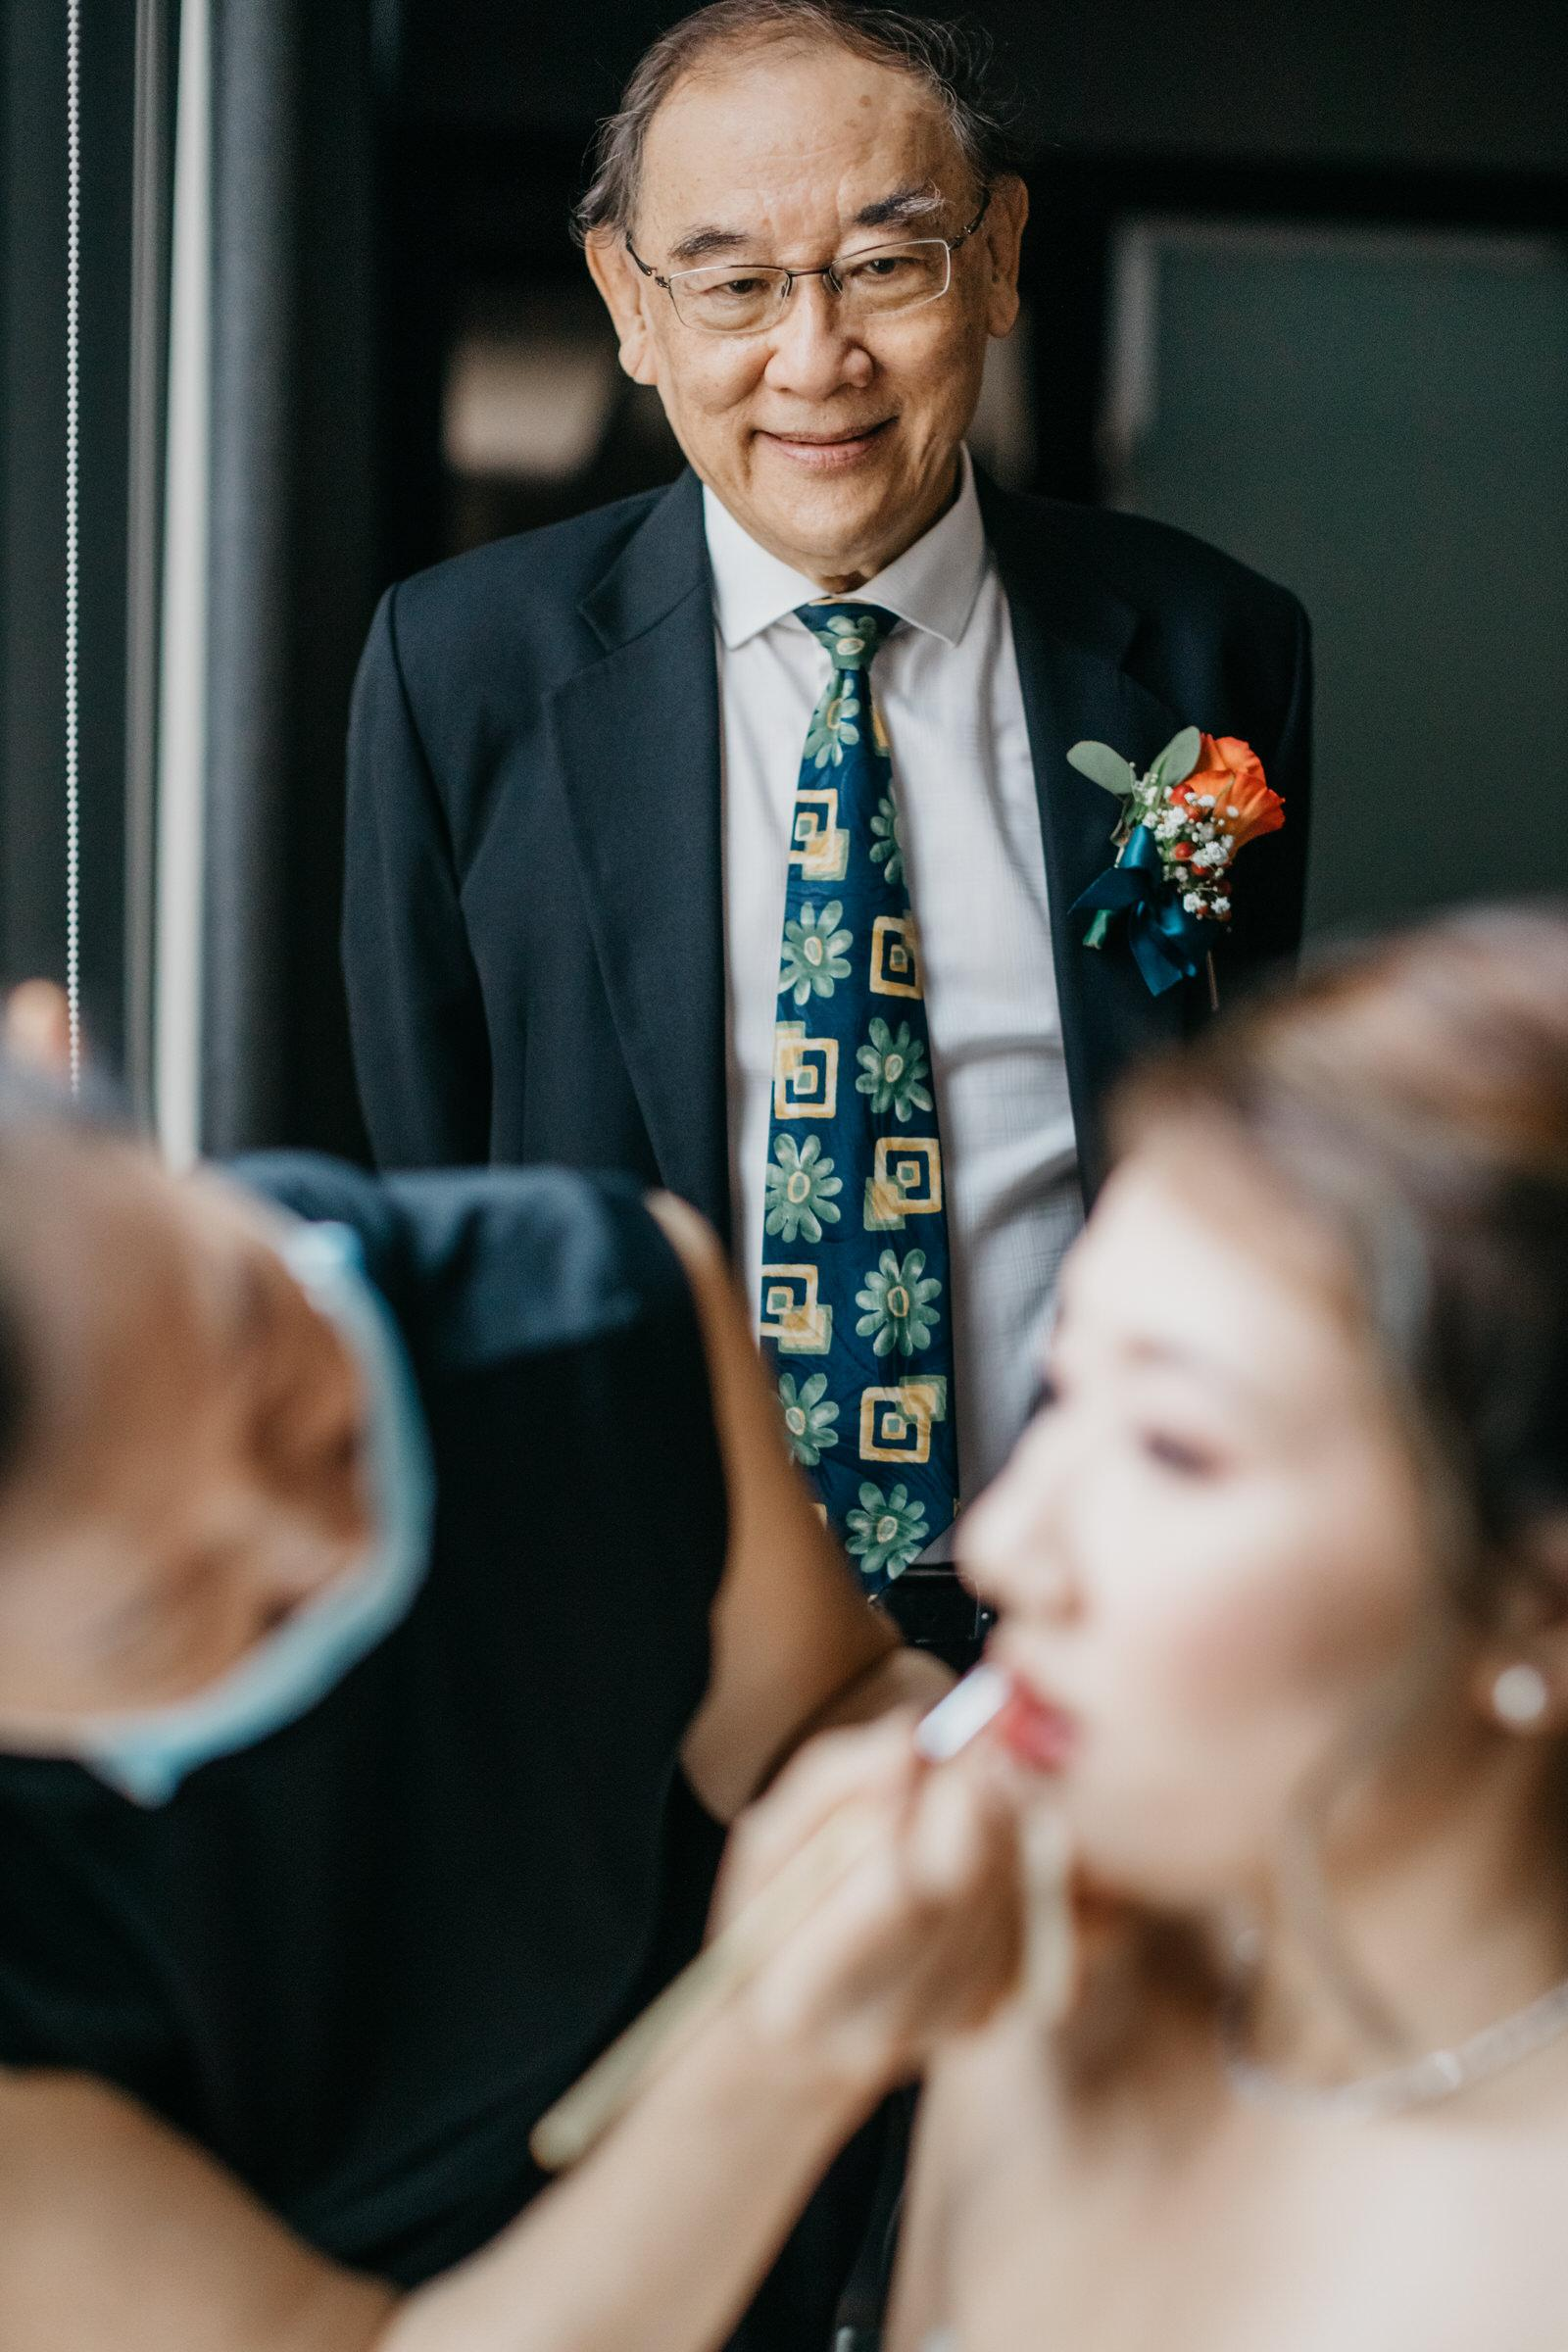 Daddy Girl A Rooftop Poolside Wedding at Hotel Stripes Kuala Lumpur MCO2.0 Cliff Choong Photography Malaysia Covid19 ROM Bride Make Up Getting Ready